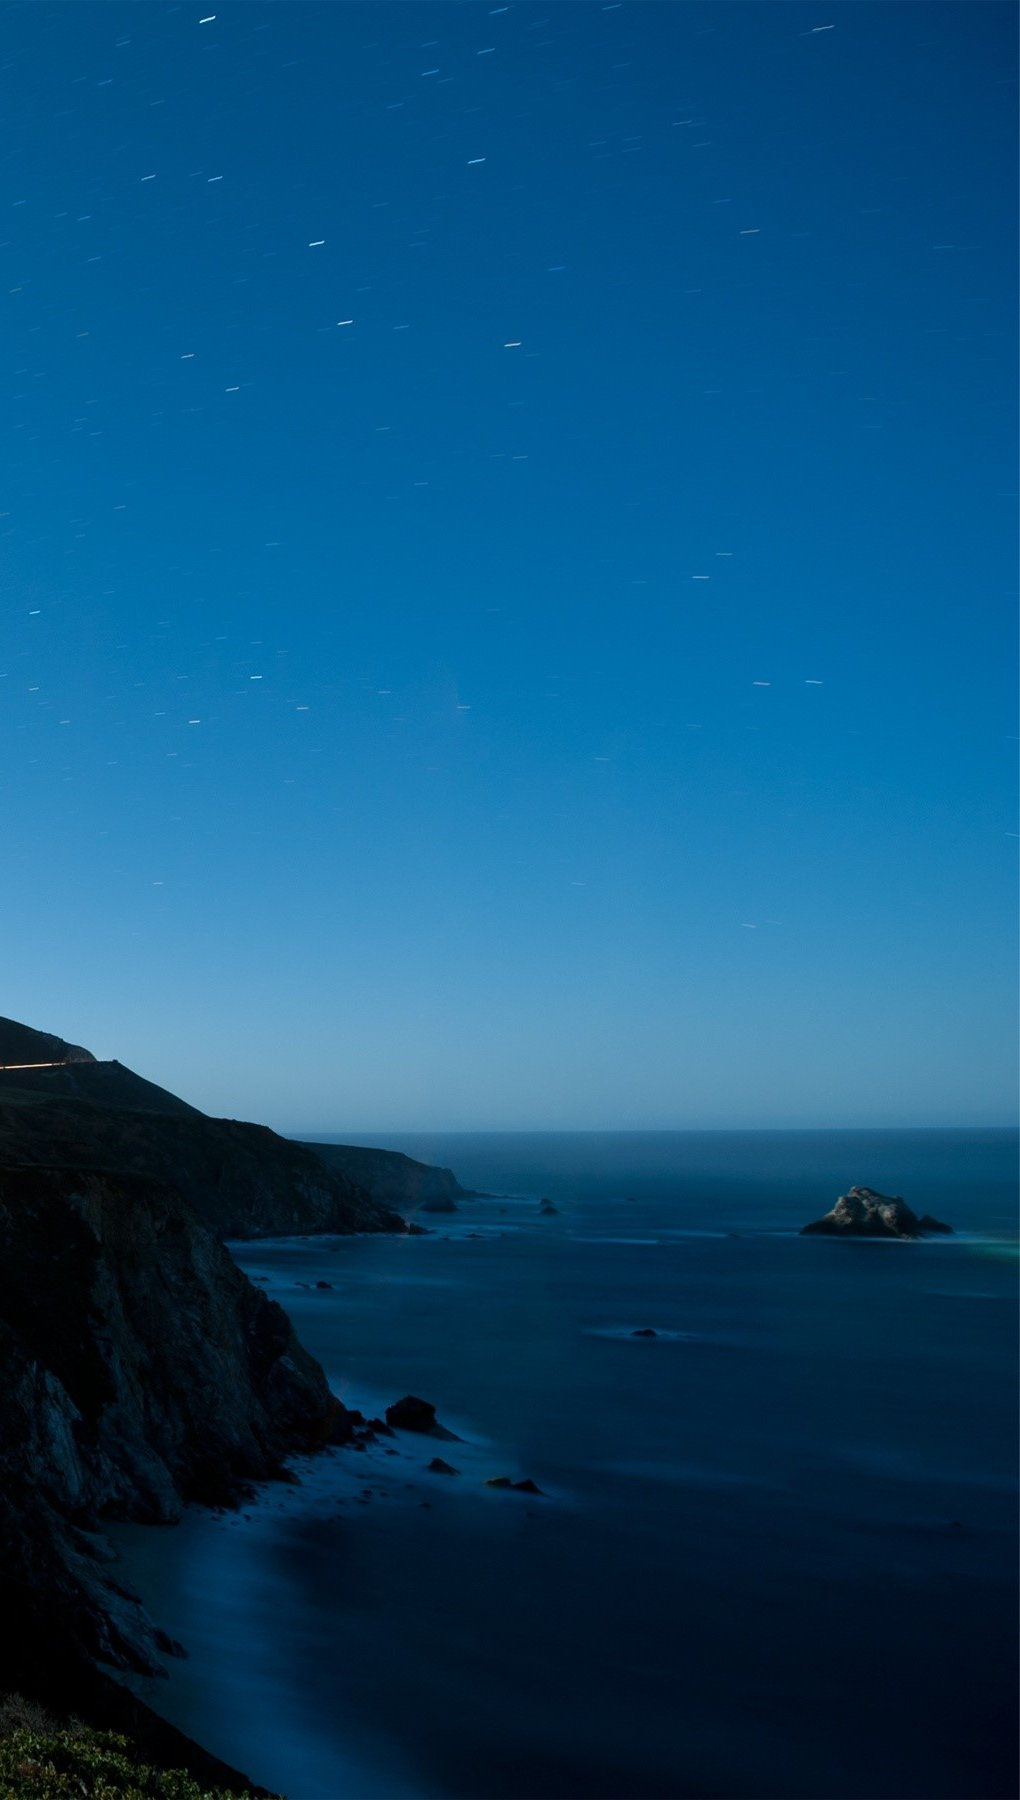 Wallpaper Bixby creek bridge Vertical